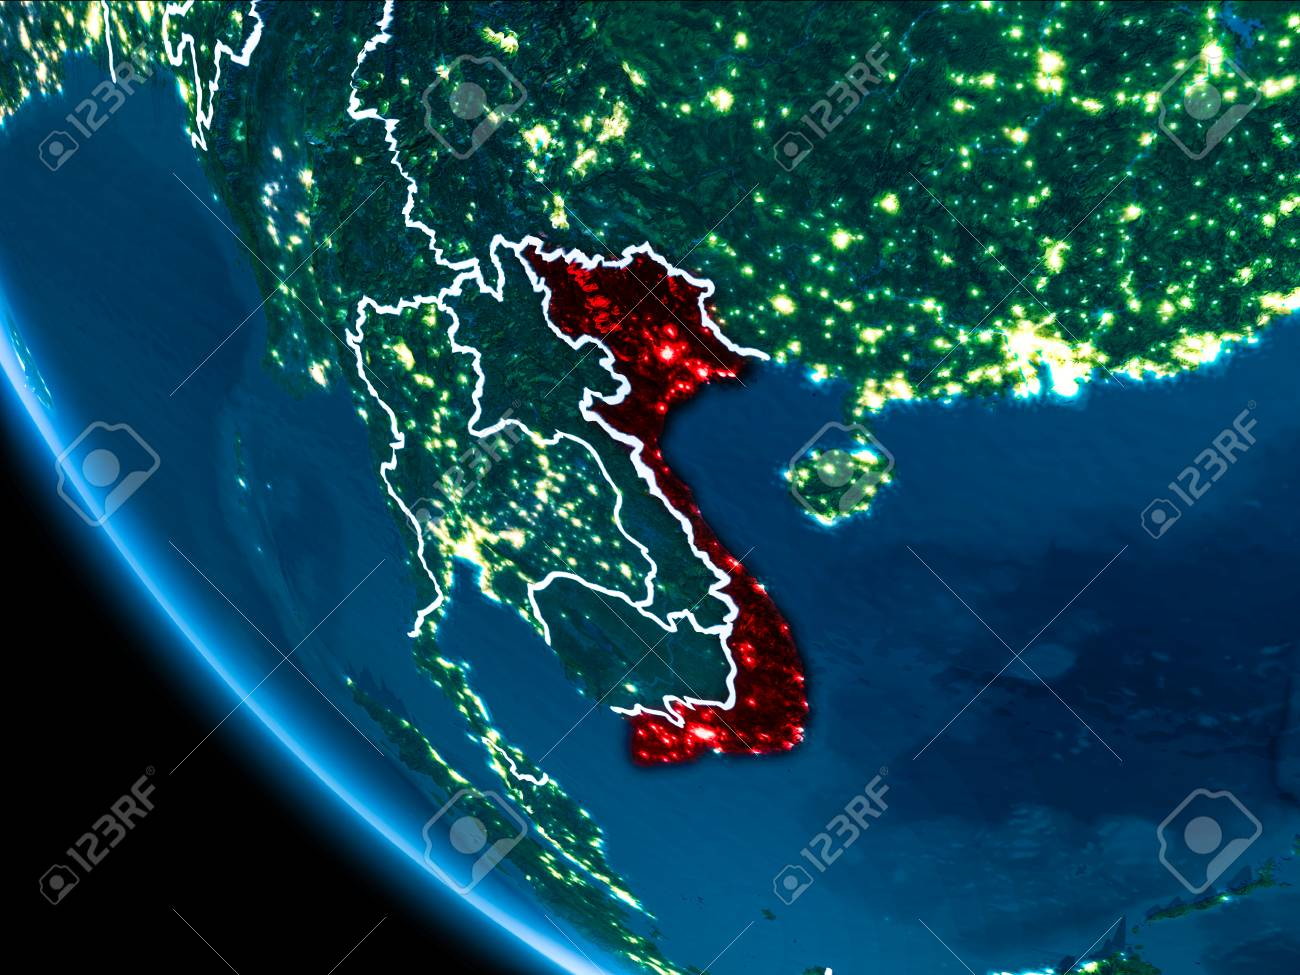 Map of vietnam in red as seen from space on planet earth at night illustration map of vietnam in red as seen from space on planet earth at night with white borderlines and city lights 3d illustration gumiabroncs Gallery